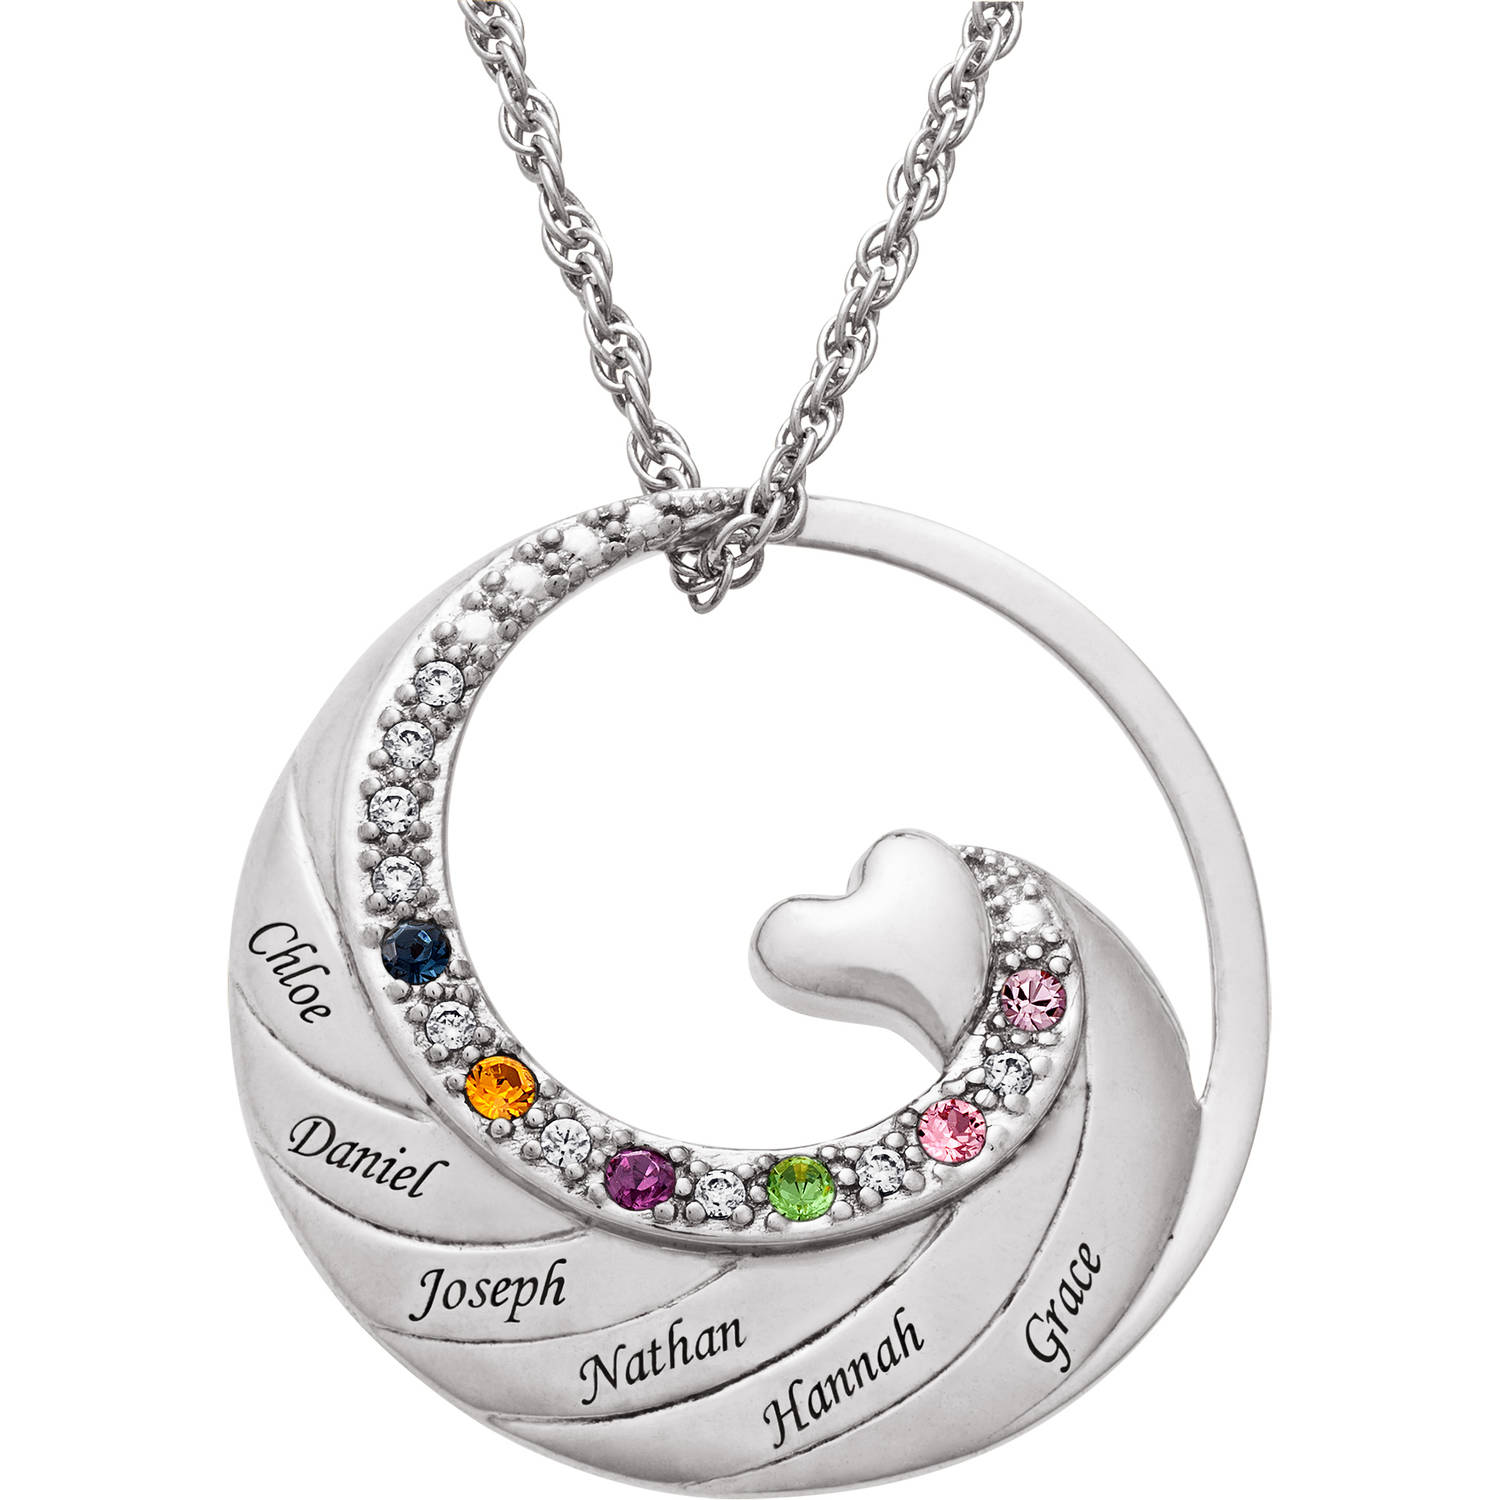 Personalized Women's Gold-Plated or Rhodium-Plated Family Name and Birthstone Circle with Heart Necklace, 20